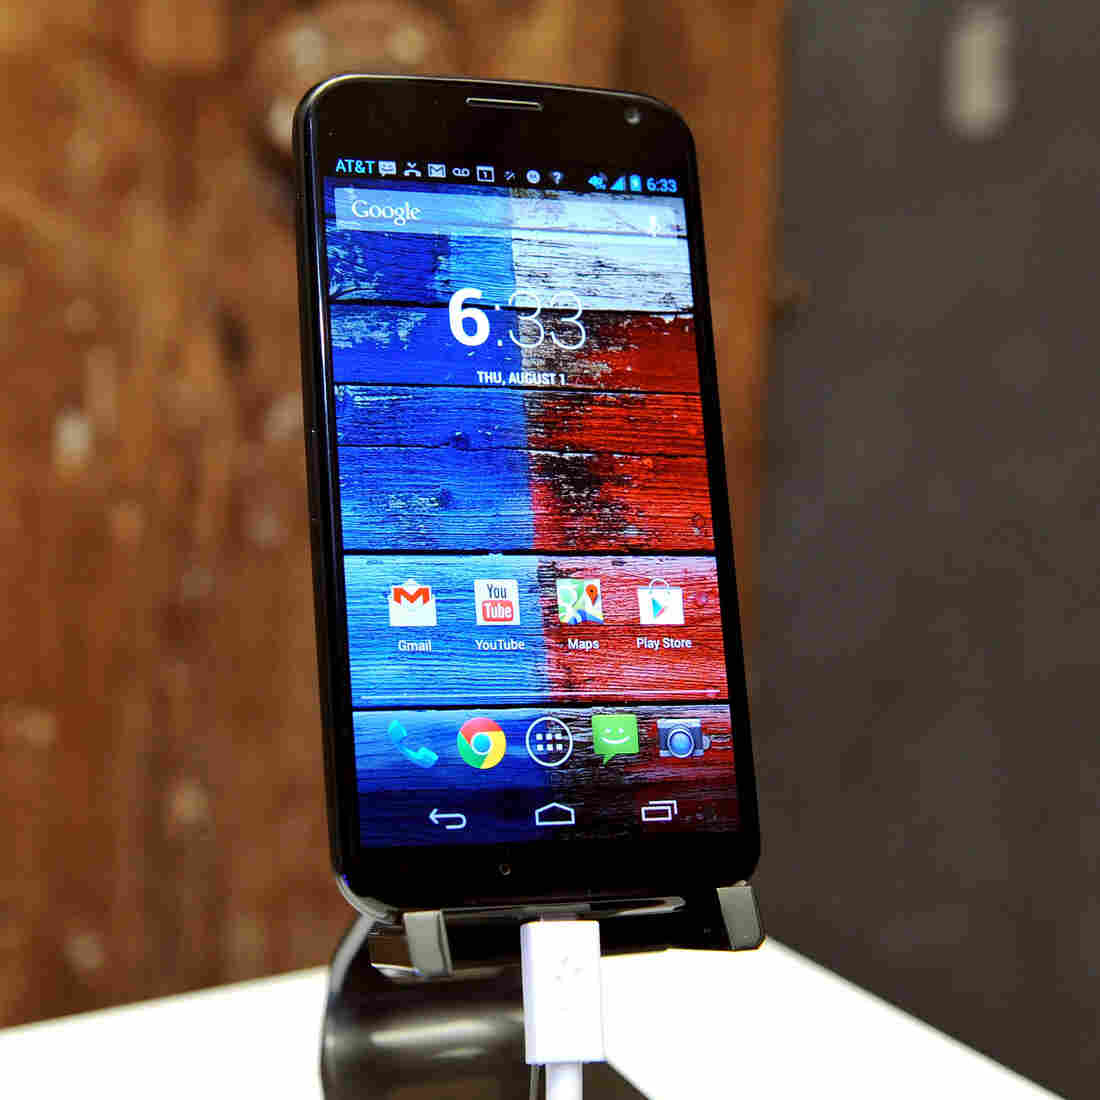 The new Moto X launched Thursday in New York City.